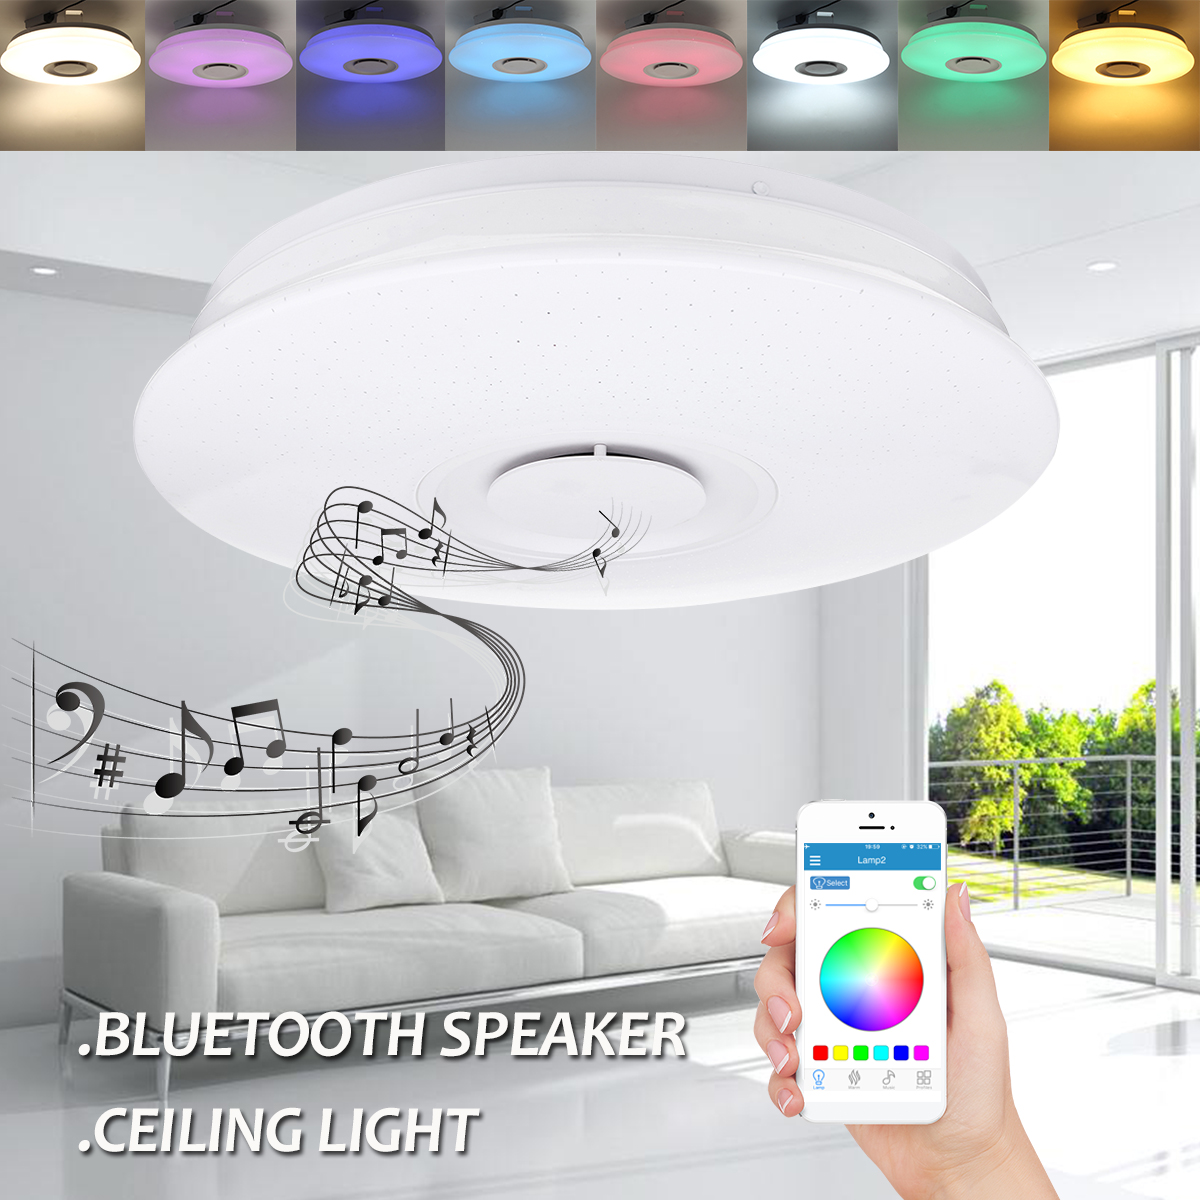 LED Ceiling Speaker Lamp Dimmable Smart App Remote Control RGB Led Bluetooth Music Speaker Ceiling Lights for Living Room [dbf]e27 10w bluetooth speaker for mobile smart led light lamp music wireless speaker color change dimmable by ios android app